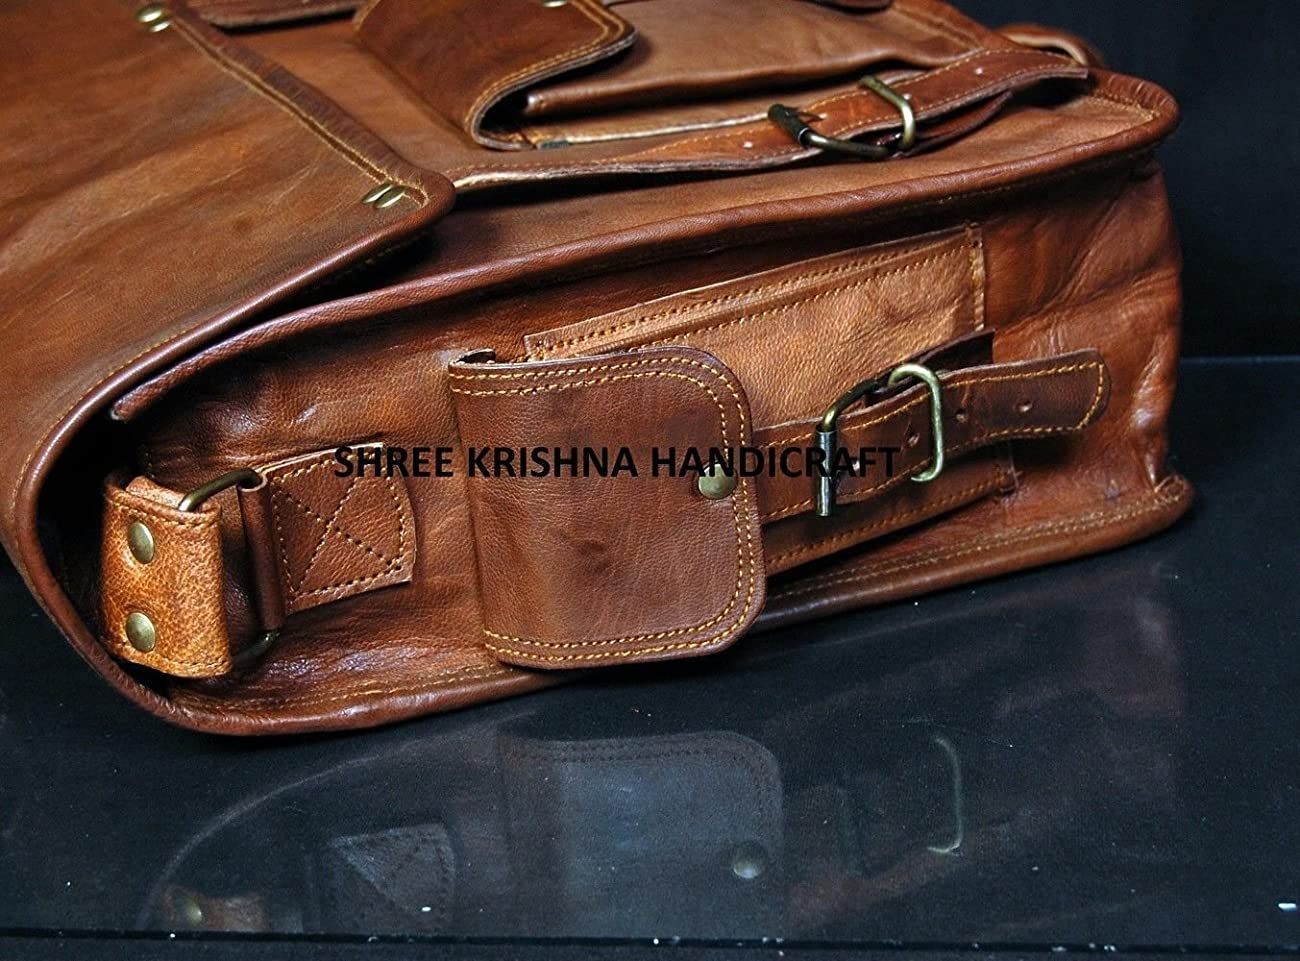 SKH Men's Genuine Vintage Brown Leather Messenger Shoulder Laptop Bag for Upto 15-Inch Laptop 4